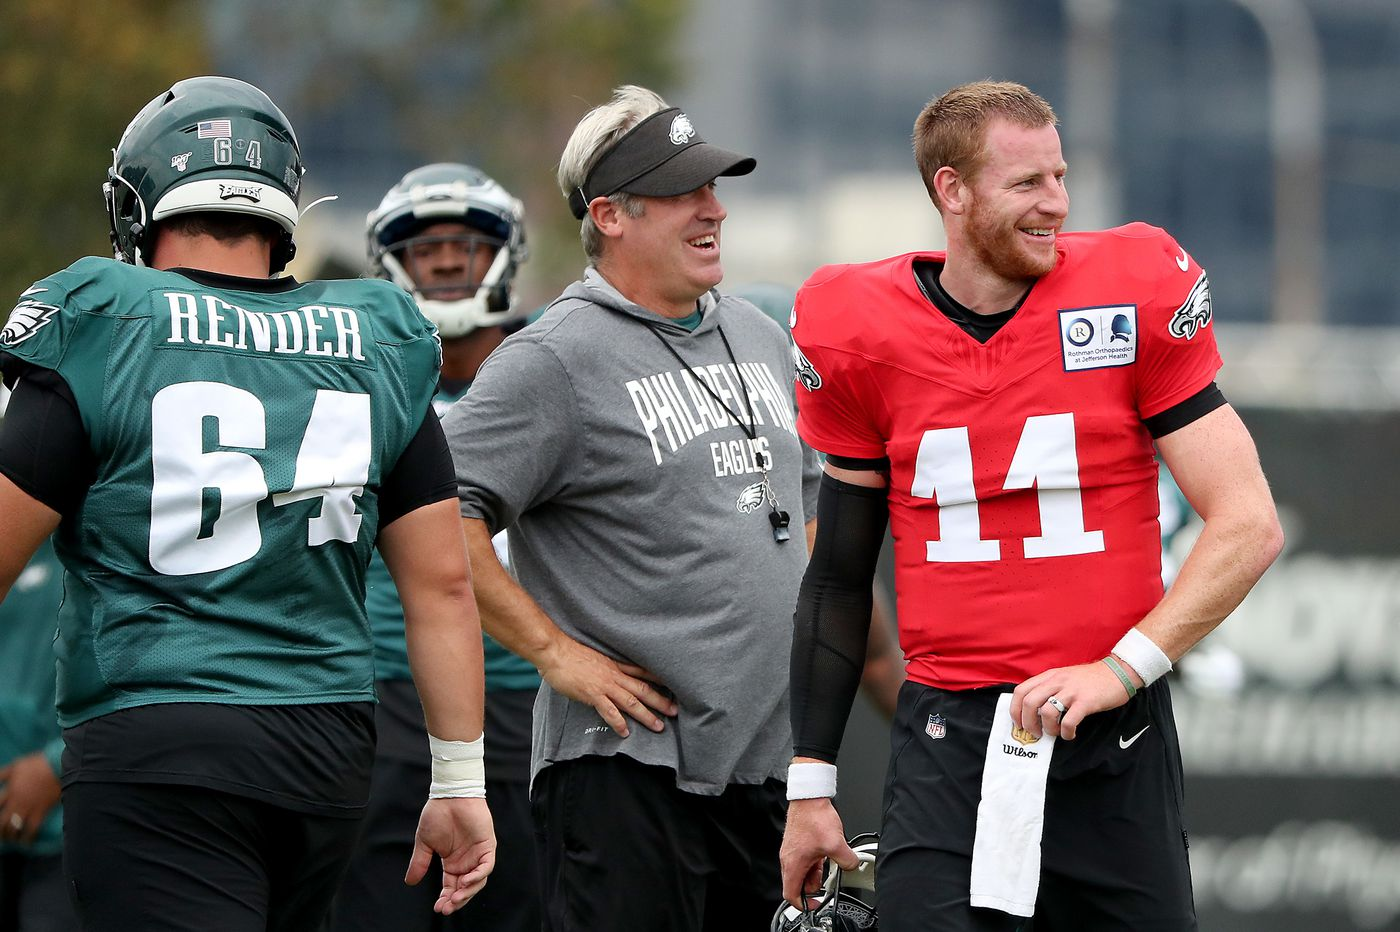 Eagles and NFL are back, but a long way from 2020 season start amid coronavirus pandemic